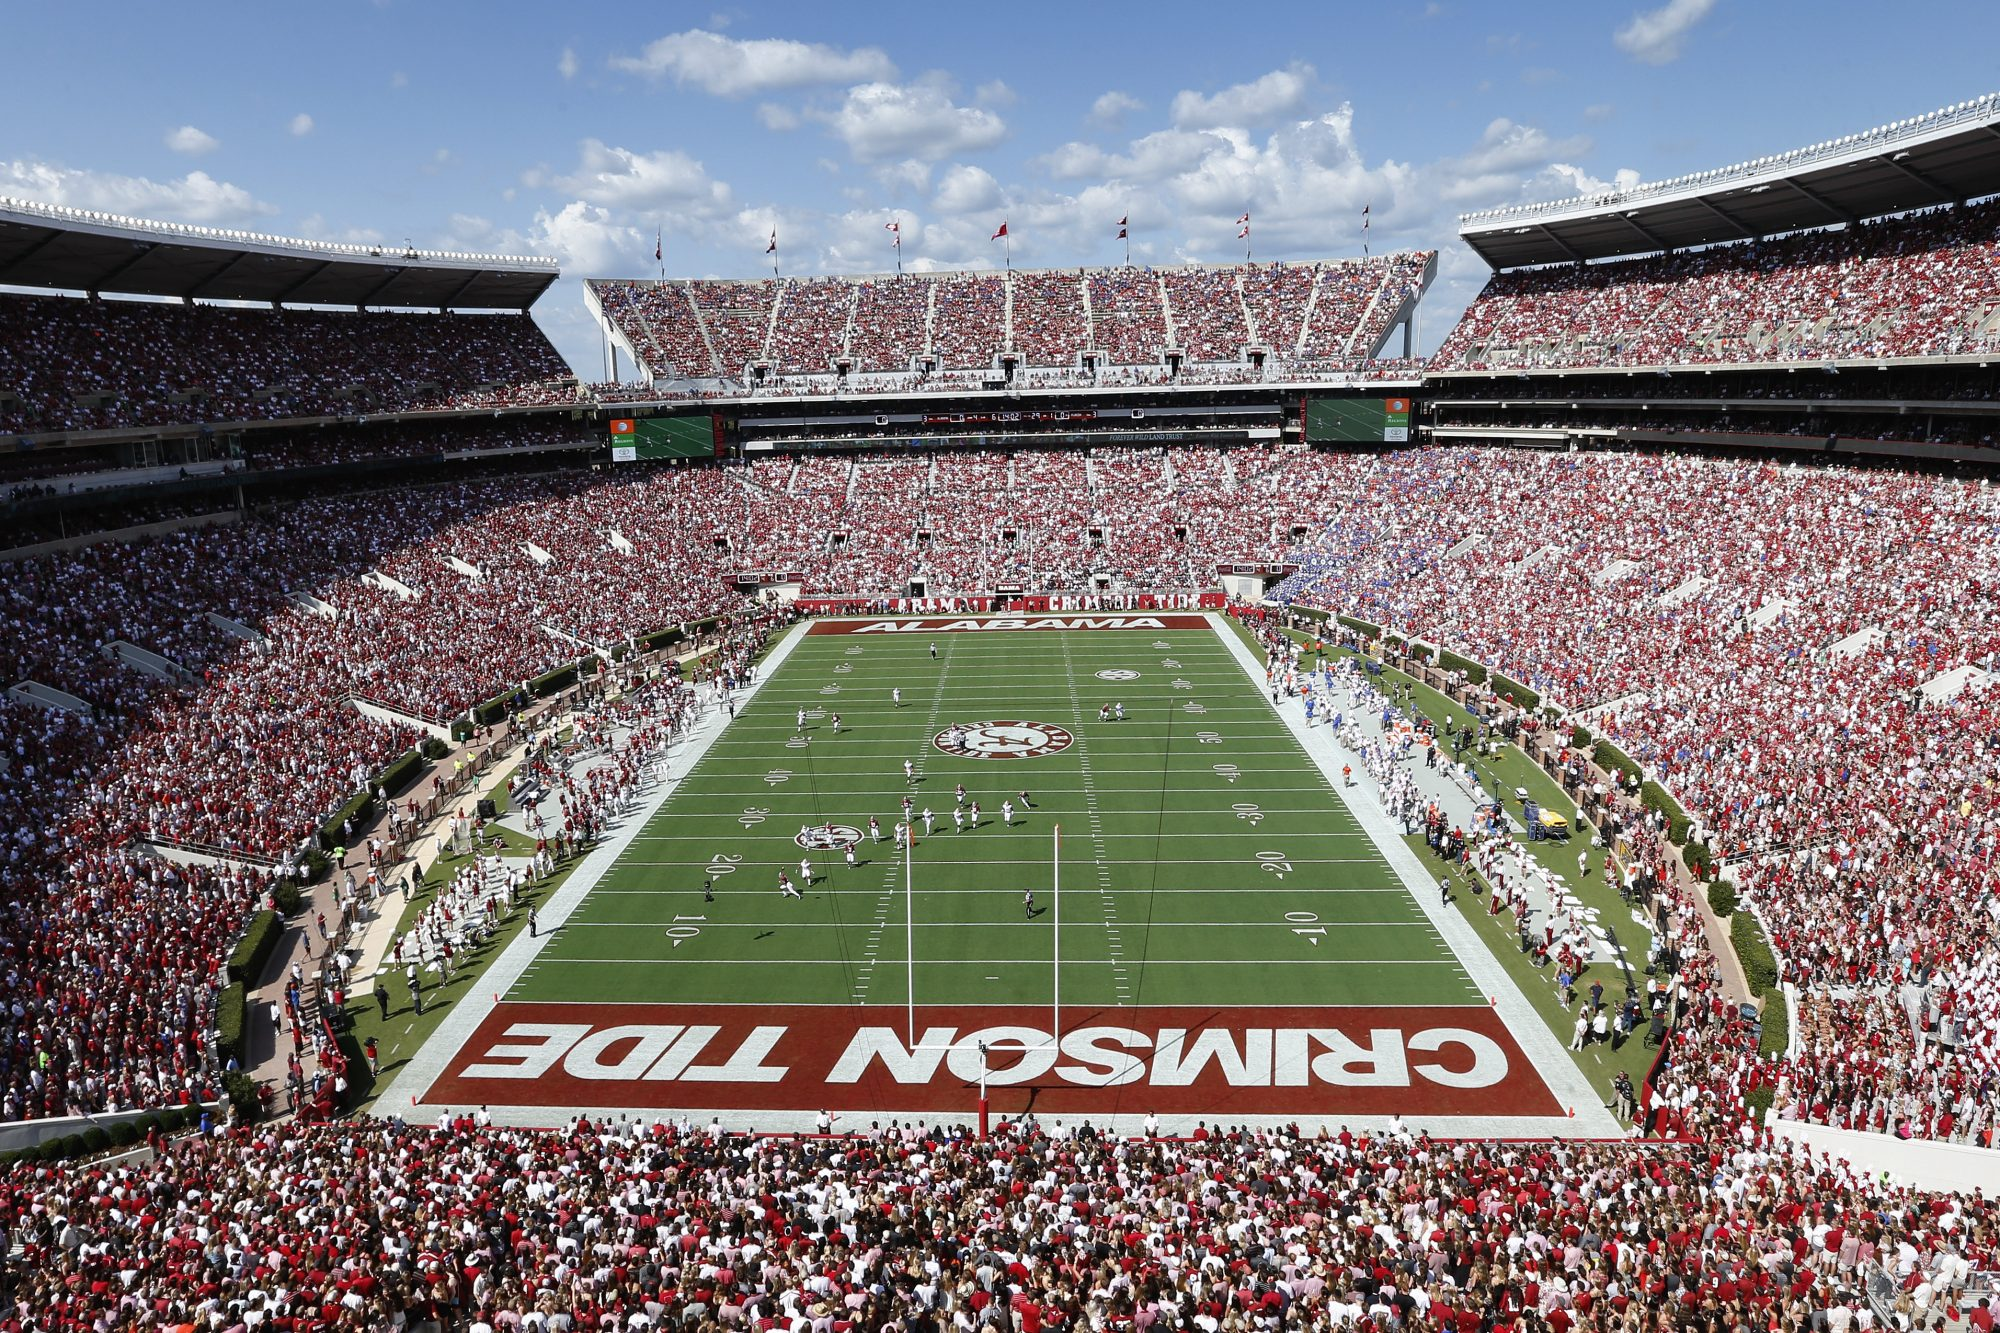 University of Alabama Stadium